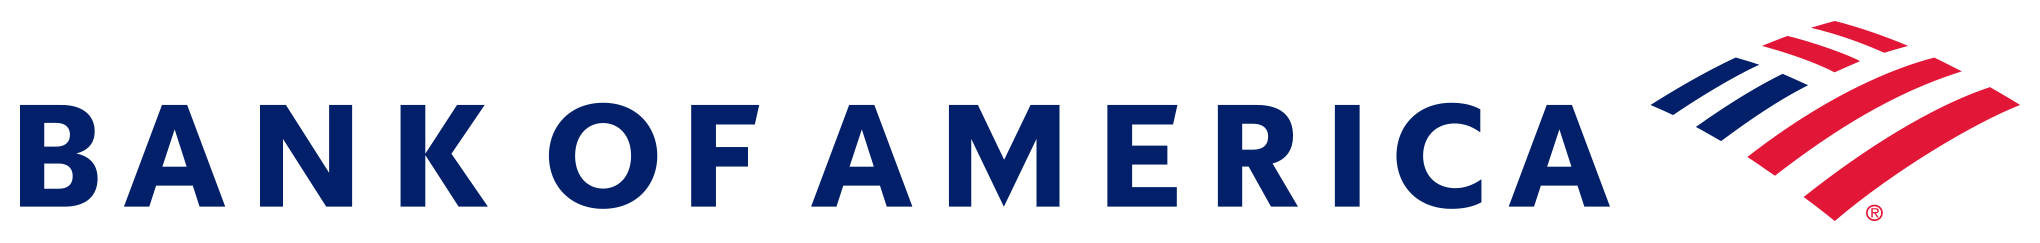 bank_of_america_logo_a8.png